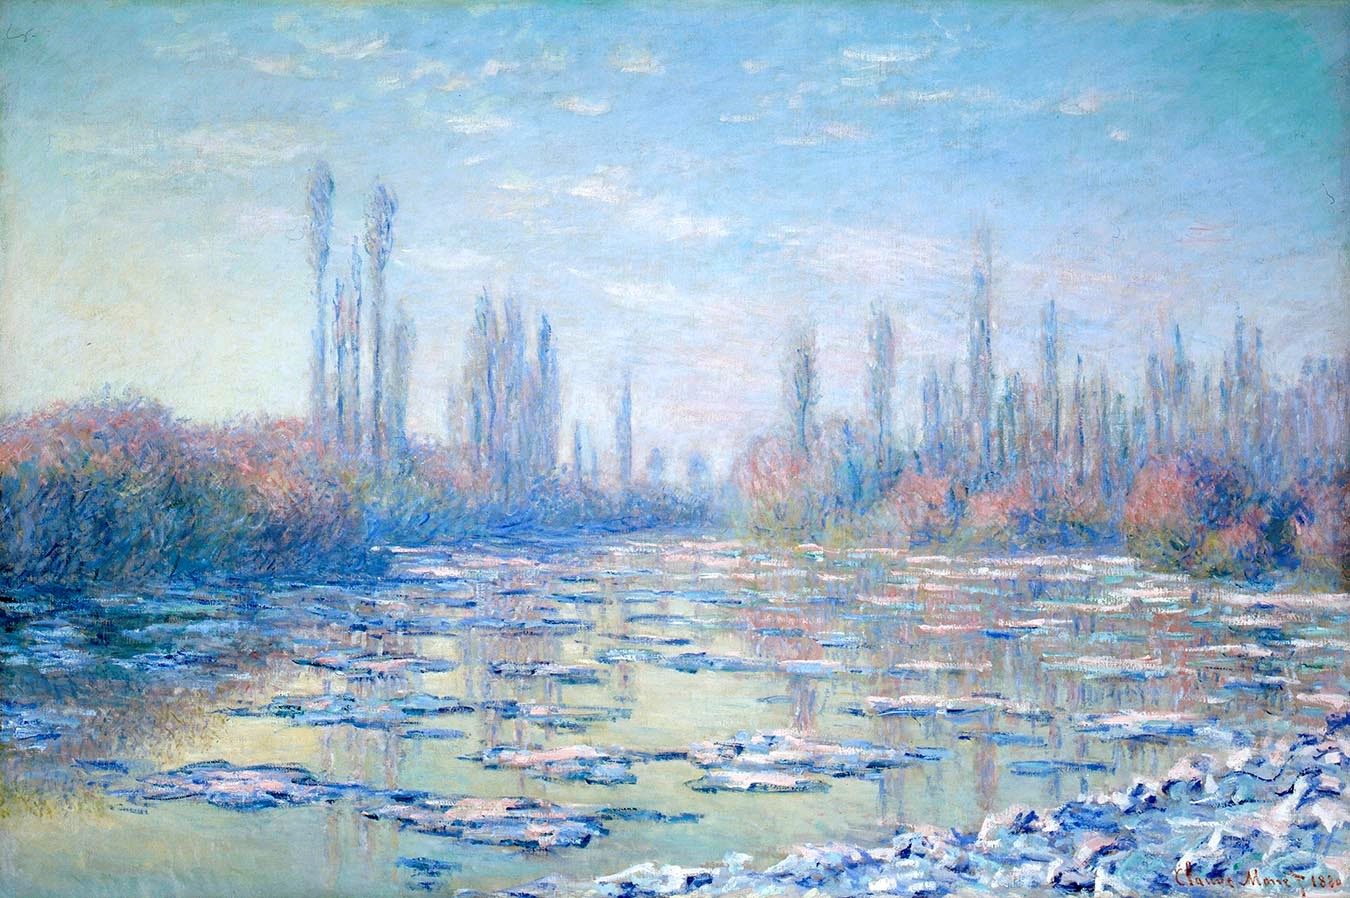 Light Effect Hd Wallpaper Monet And The Seine Impressions Of A River The Museum